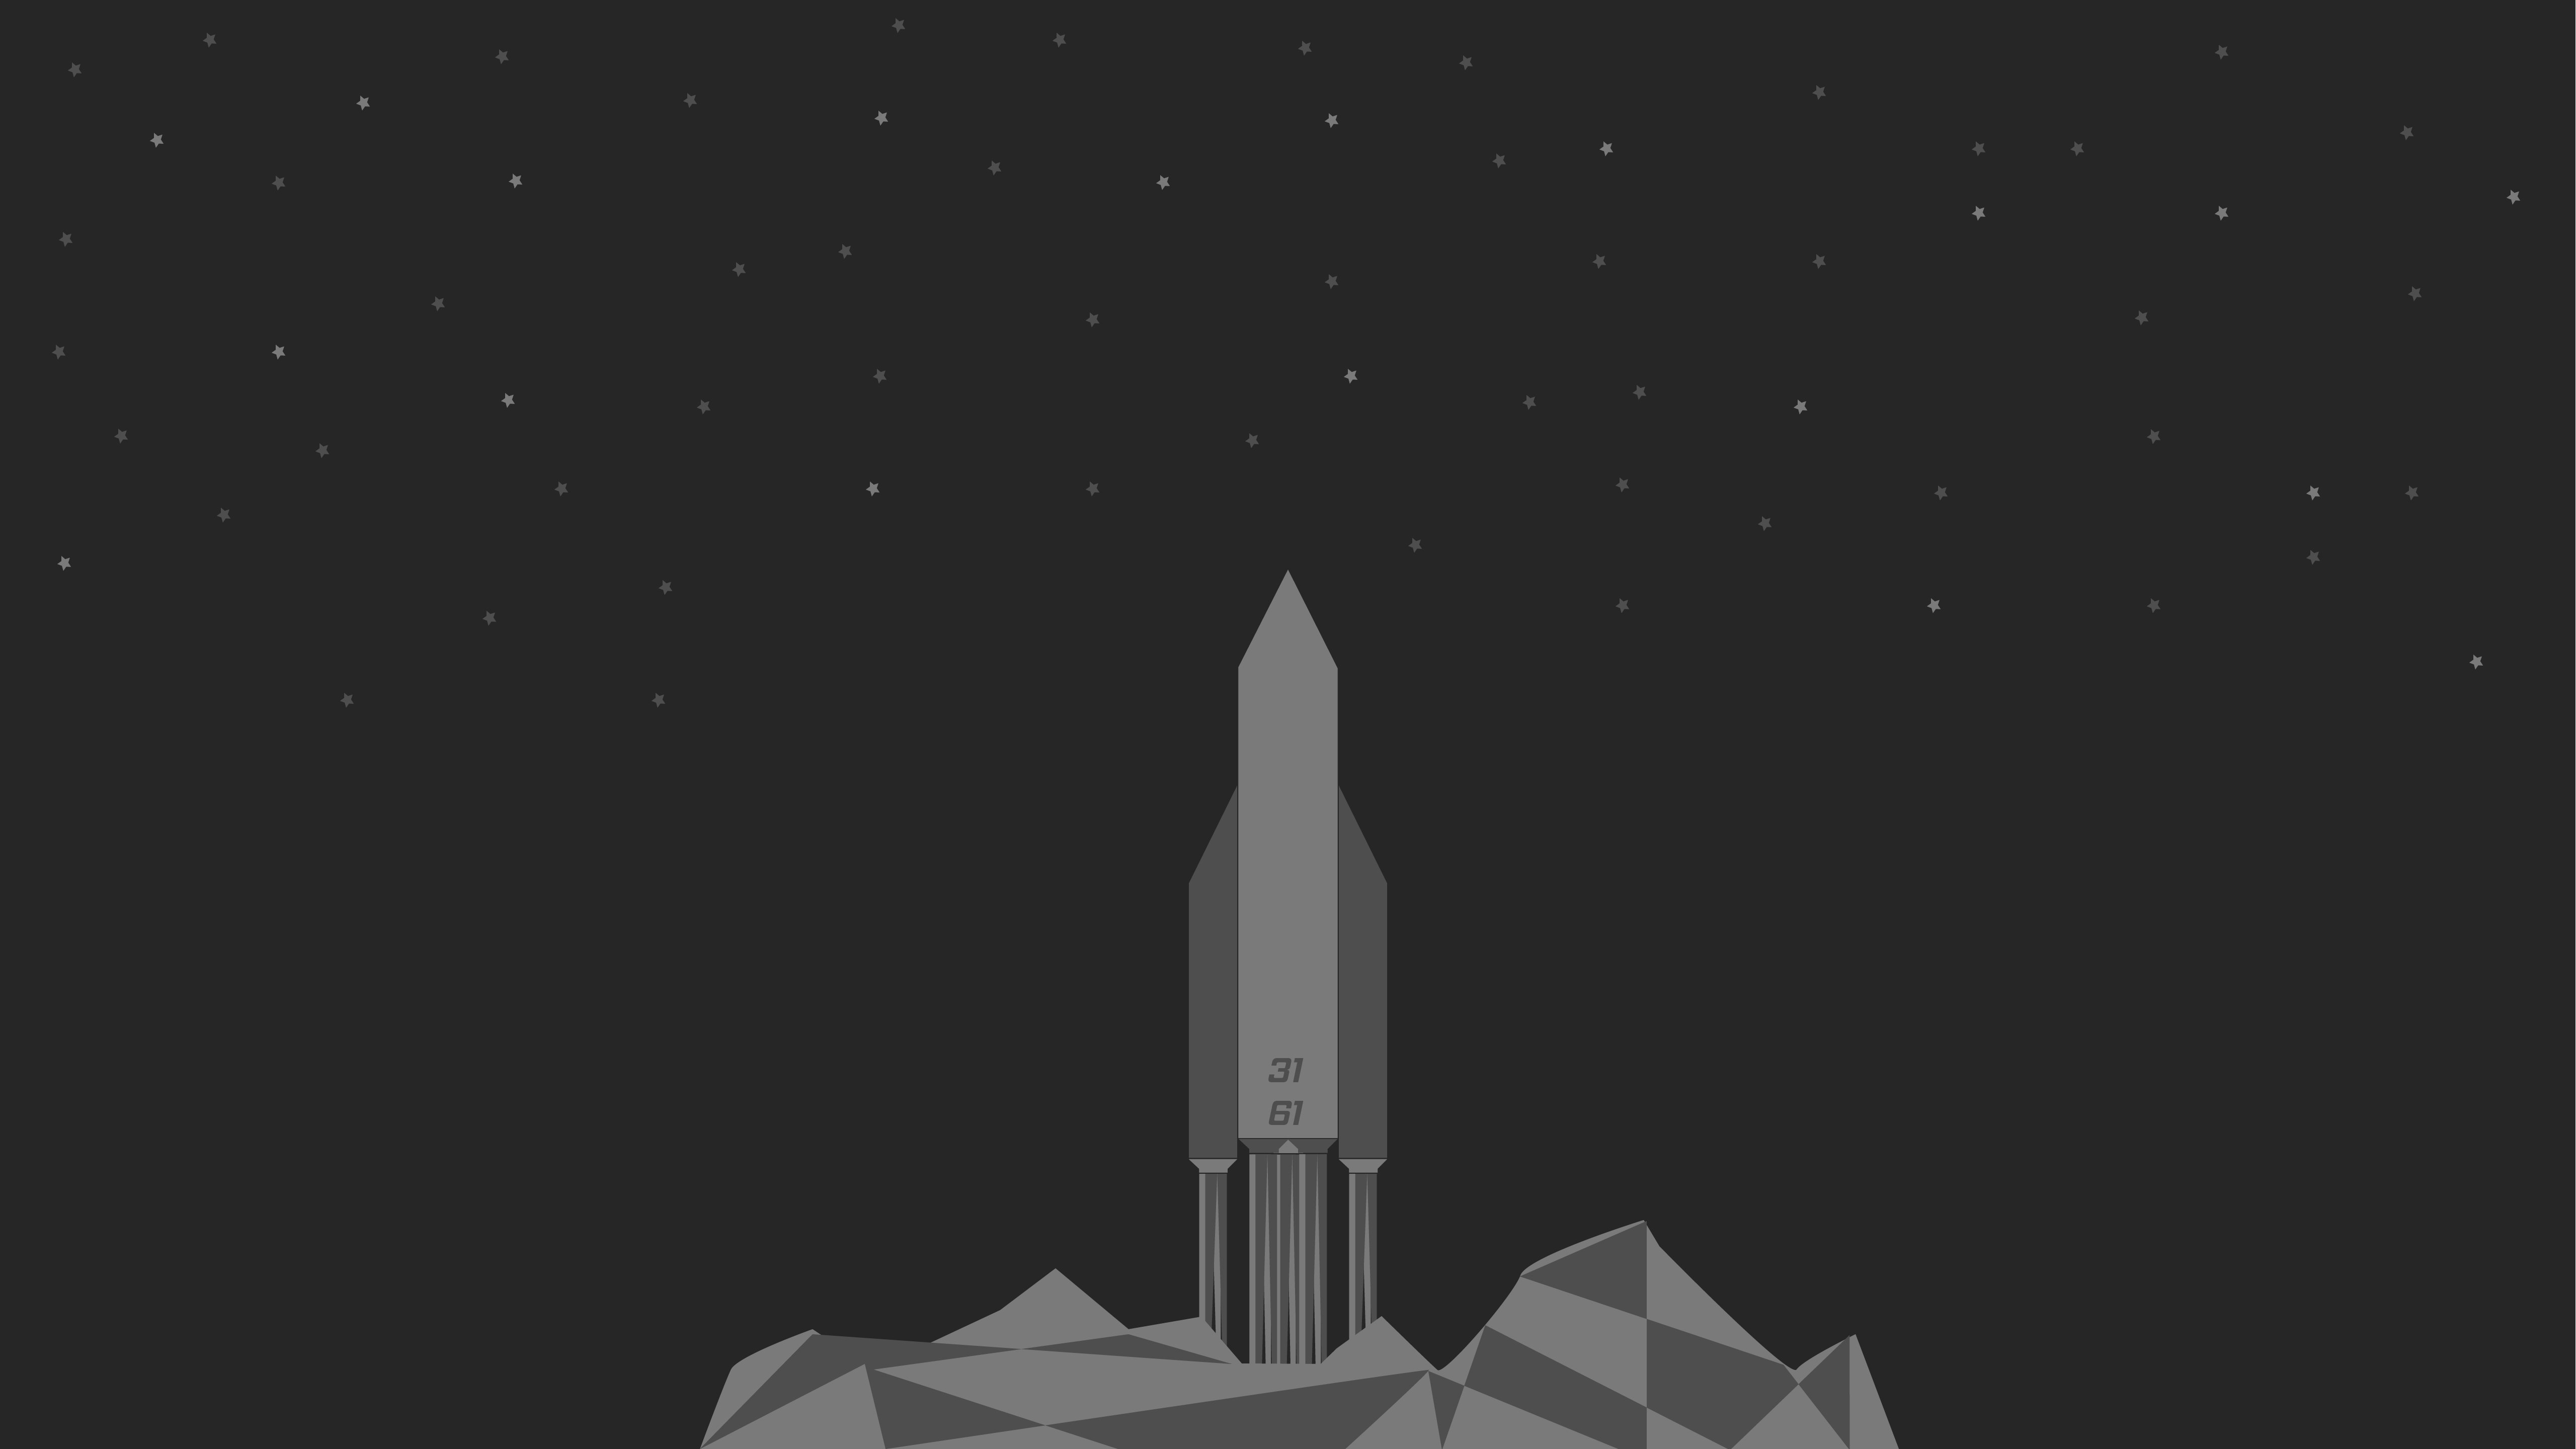 Rocket Wallpapers 4k For Your Phone And Desktop Screen